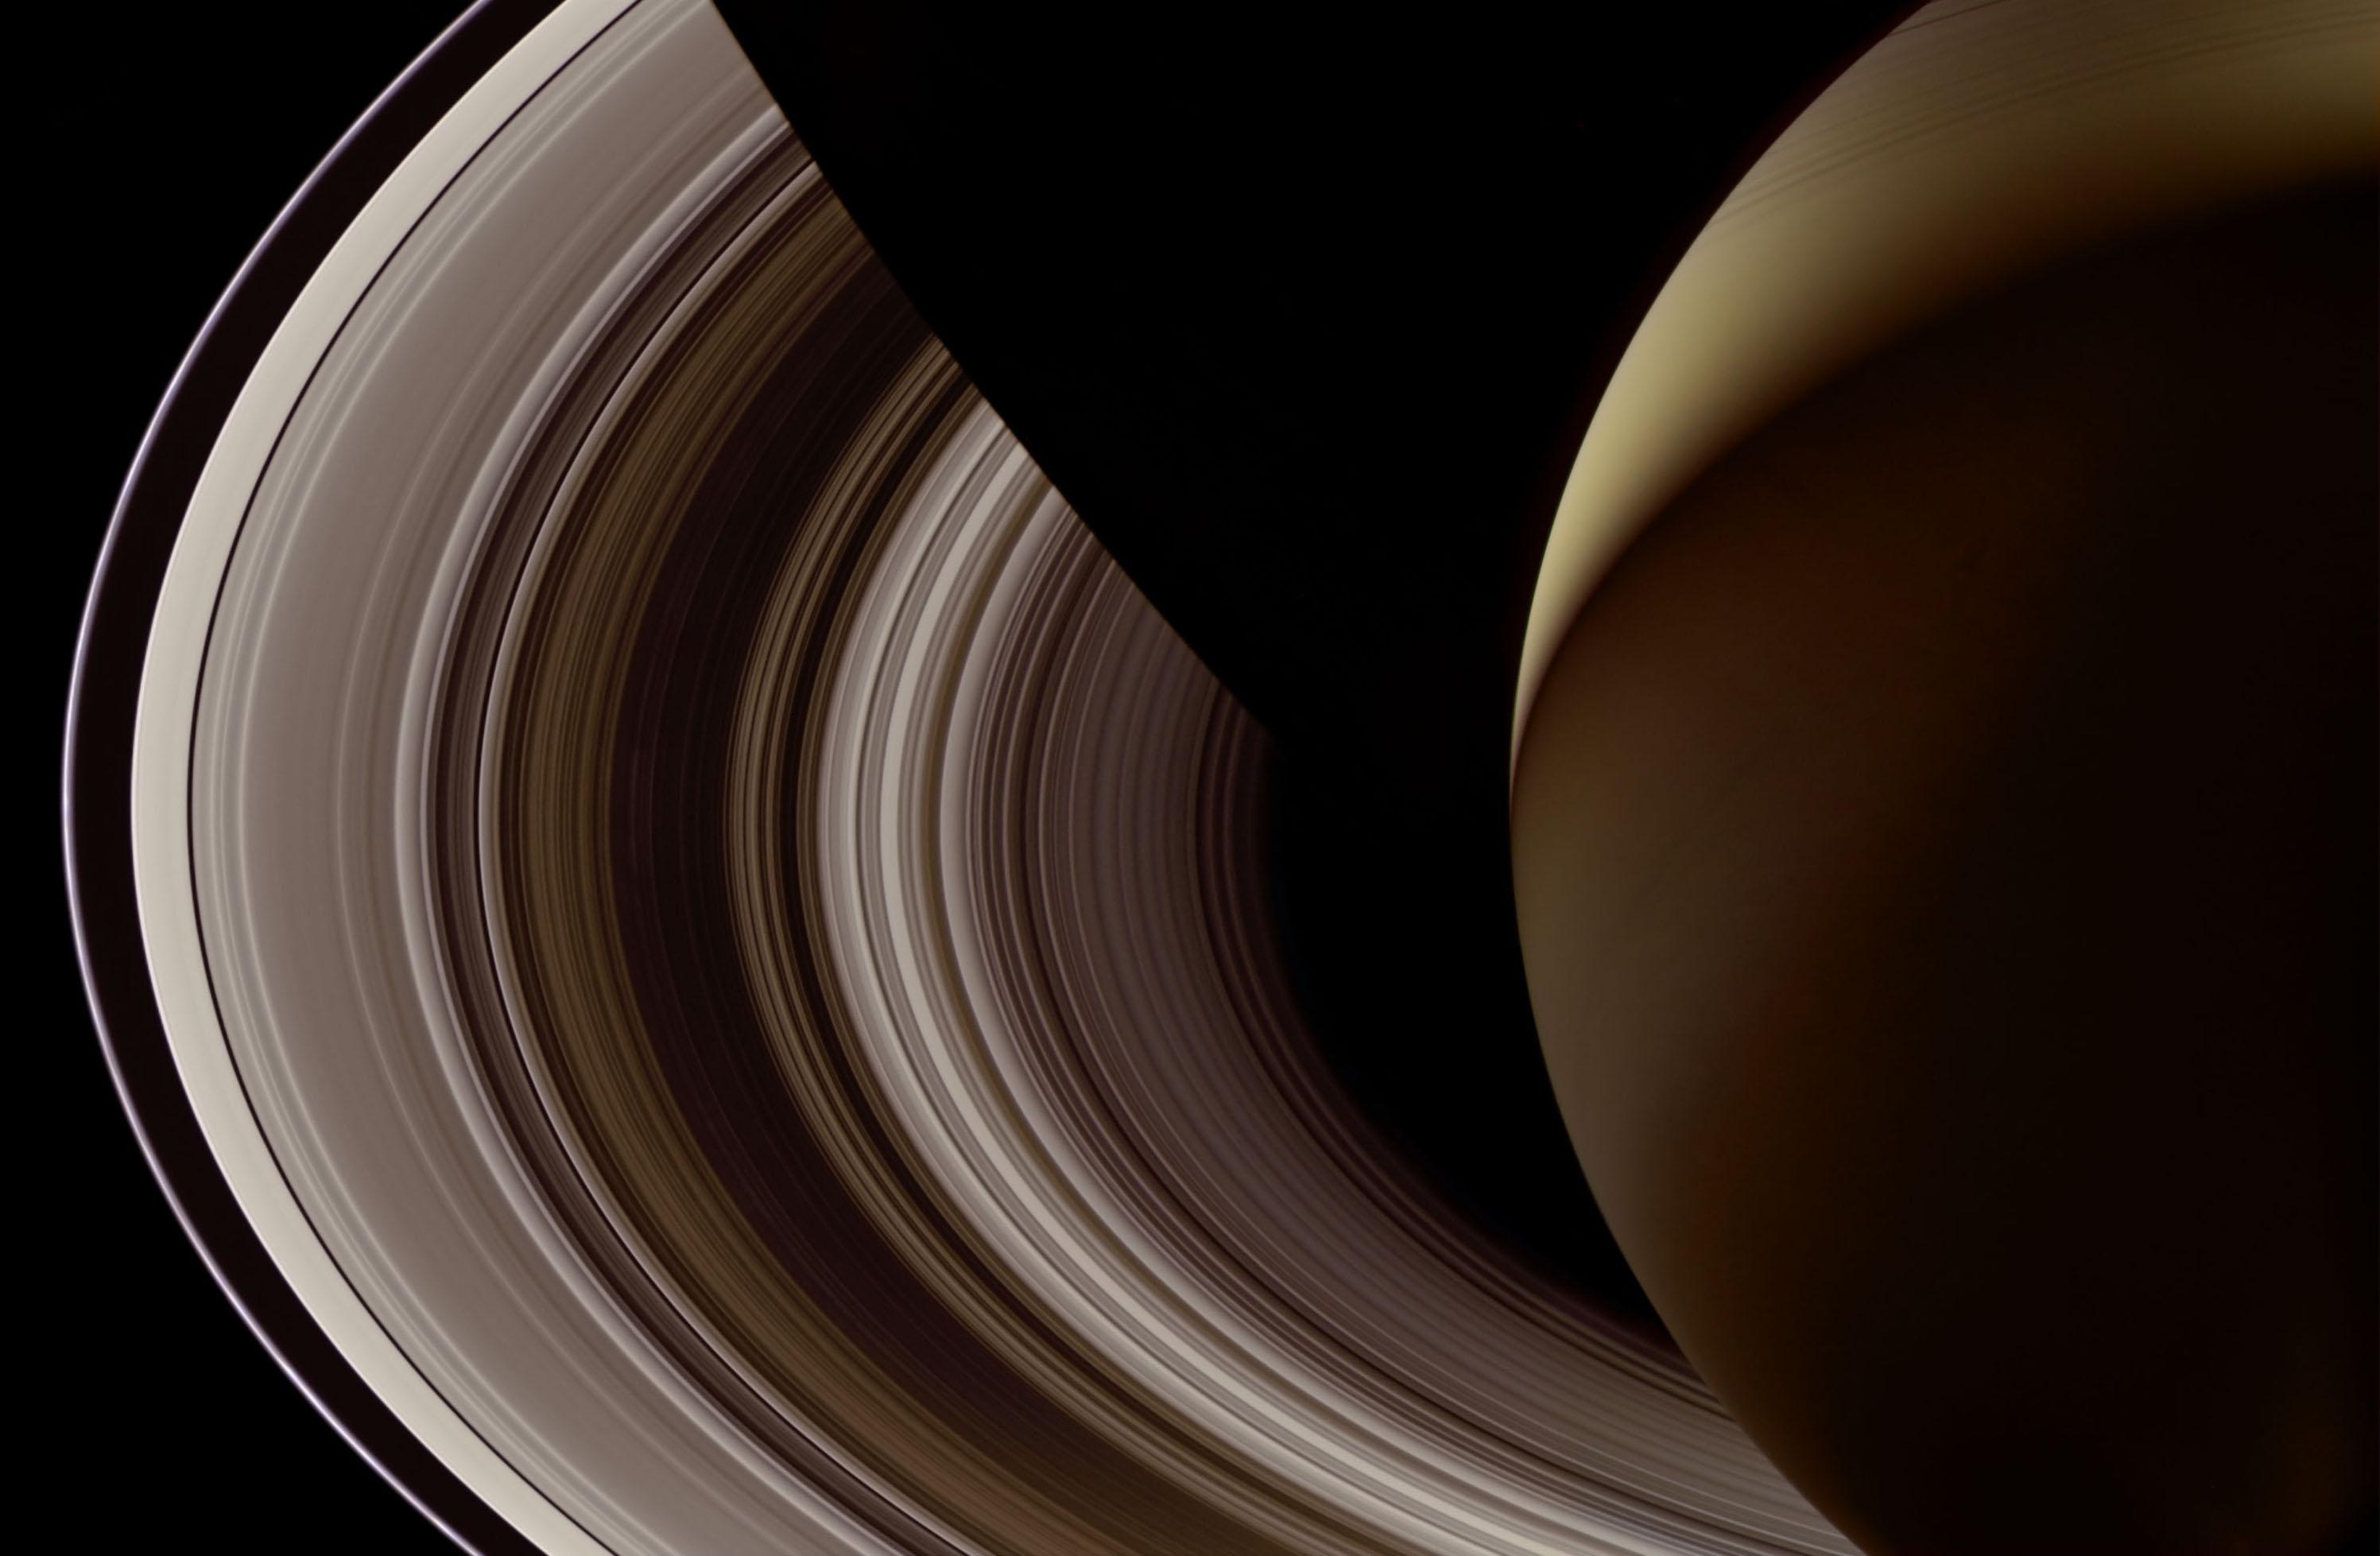 Saturn_nightside_Final3_8bits_print.jpg (2994×1957)